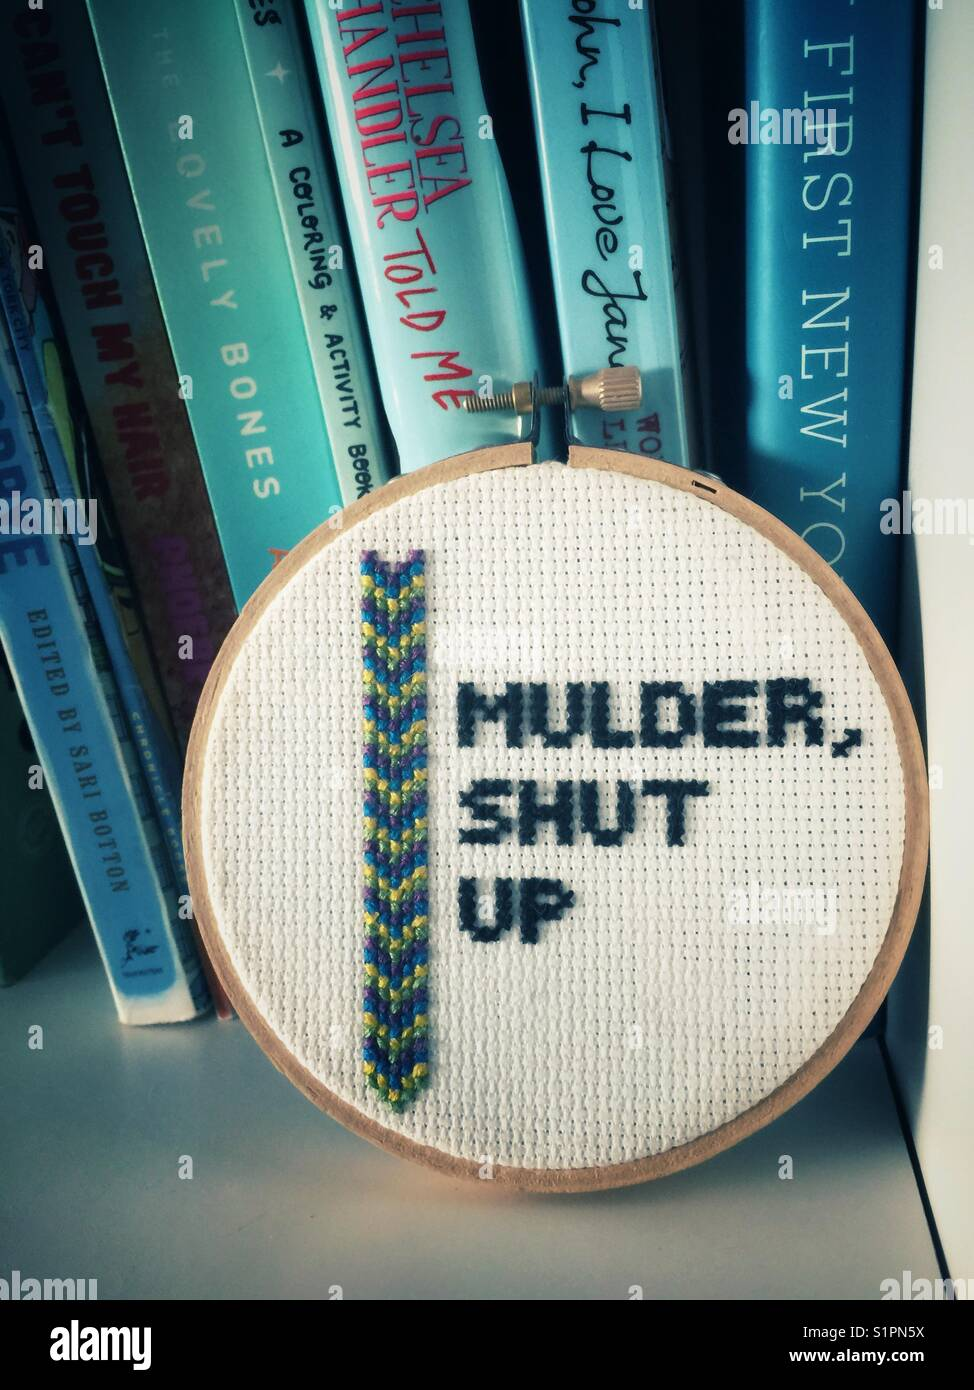 "A round counted cross stitch on a bookshelf that says ""Mulder shut up"". A reference to the X-Files television show - Stock Image"